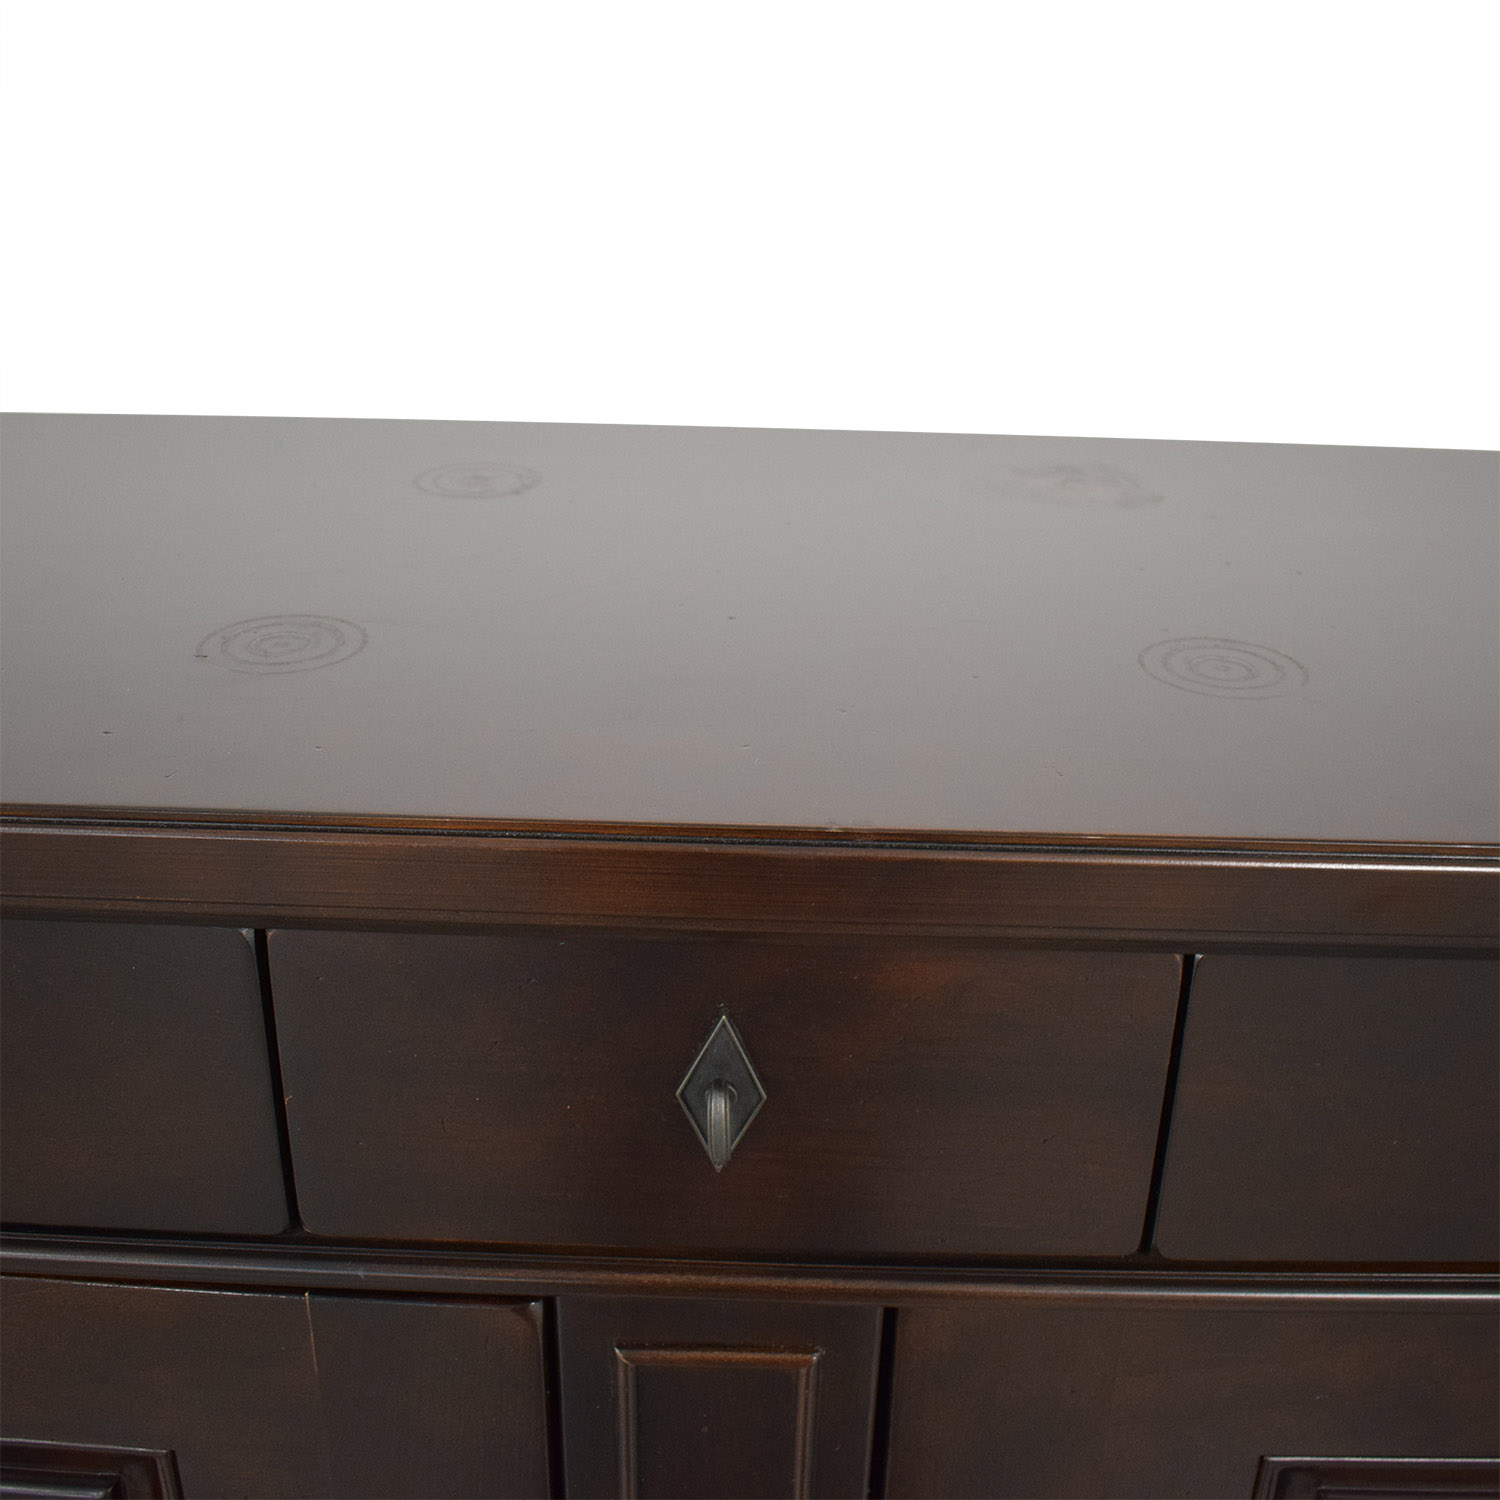 Universal Furniture Macy's Universal Furniture Dining Credenza dark brown